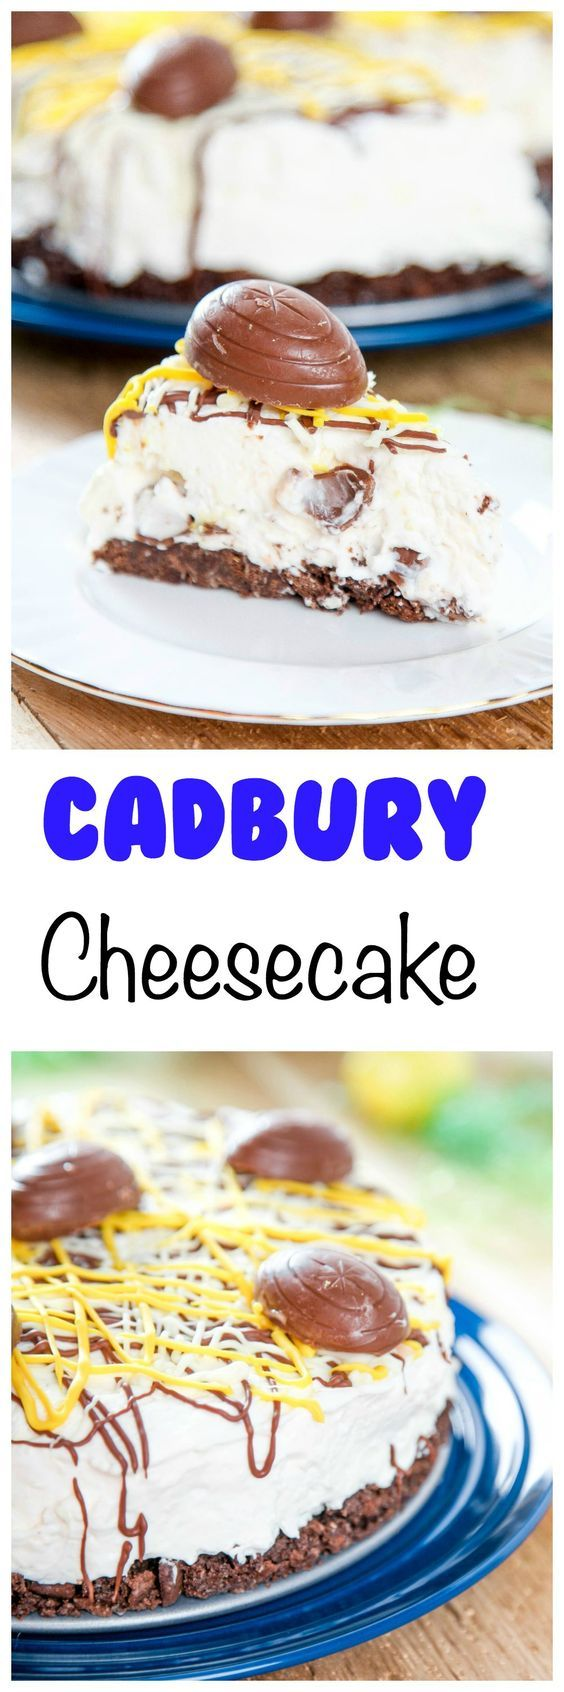 Creme Egg Cheesecake: Silky smooth cheesecake with Cadbury Eggs in every bite. The most decadent Easter dessert ever!